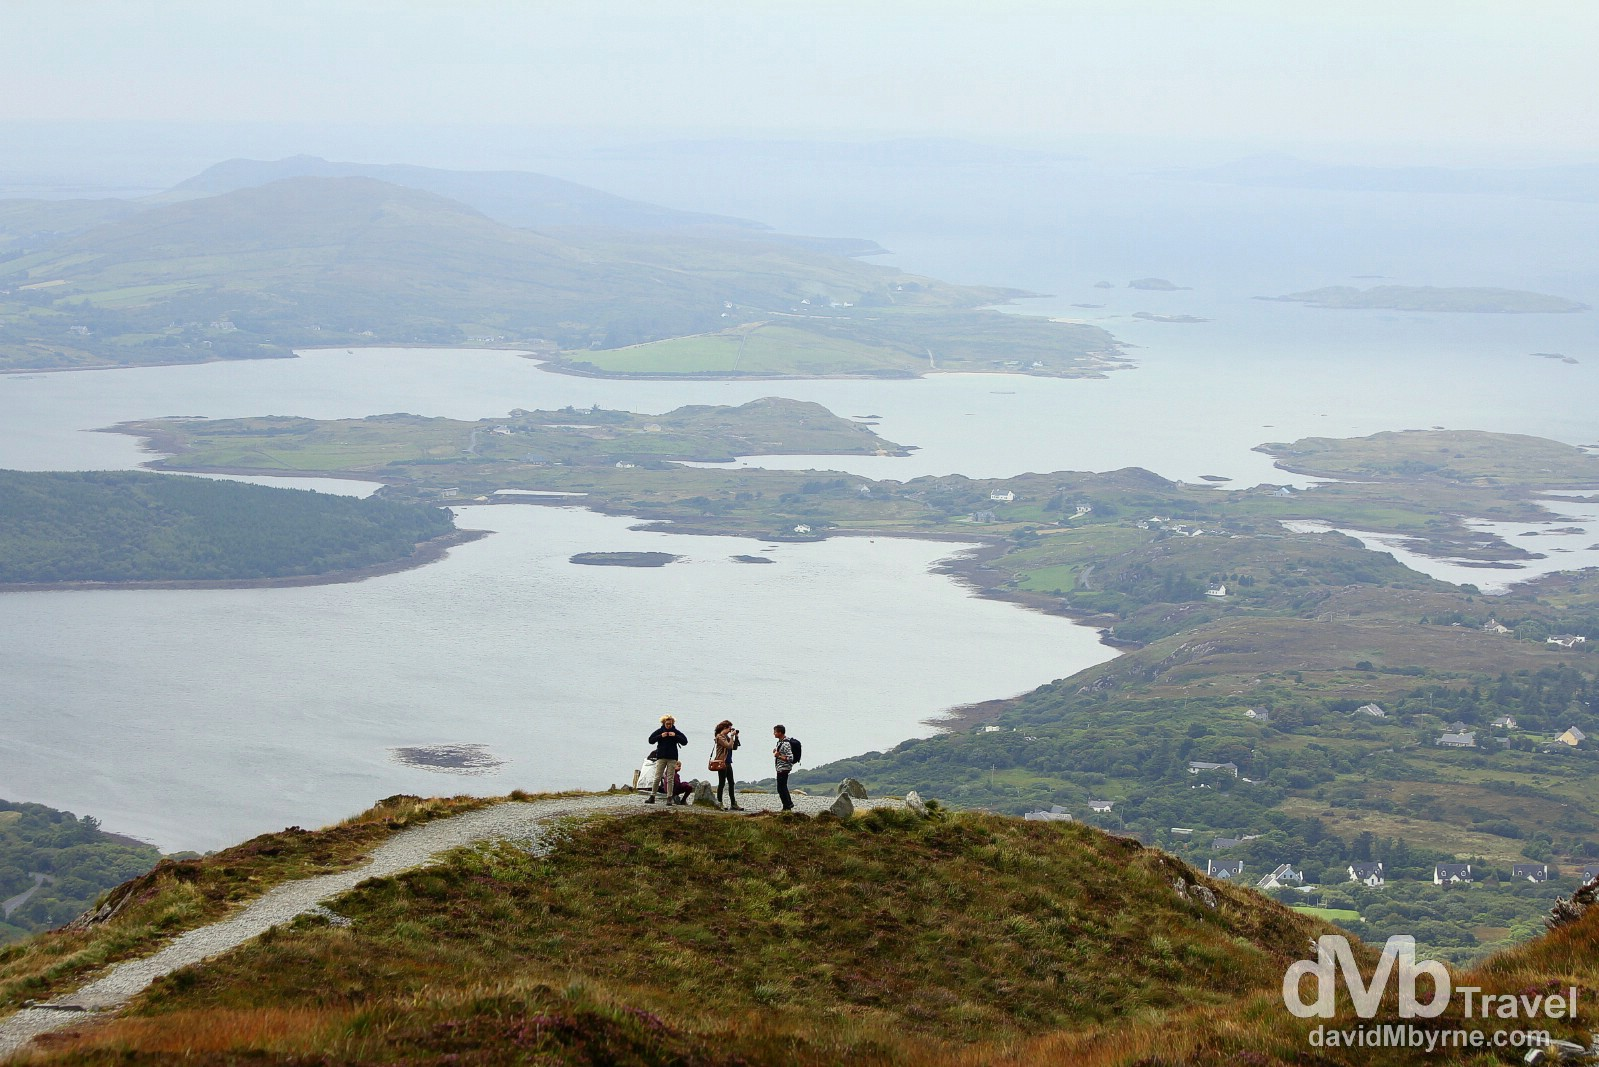 On the Upper Diamond Hill Walk in Connemara National Park, Co. Galway, Ireland. August 26, 2014.